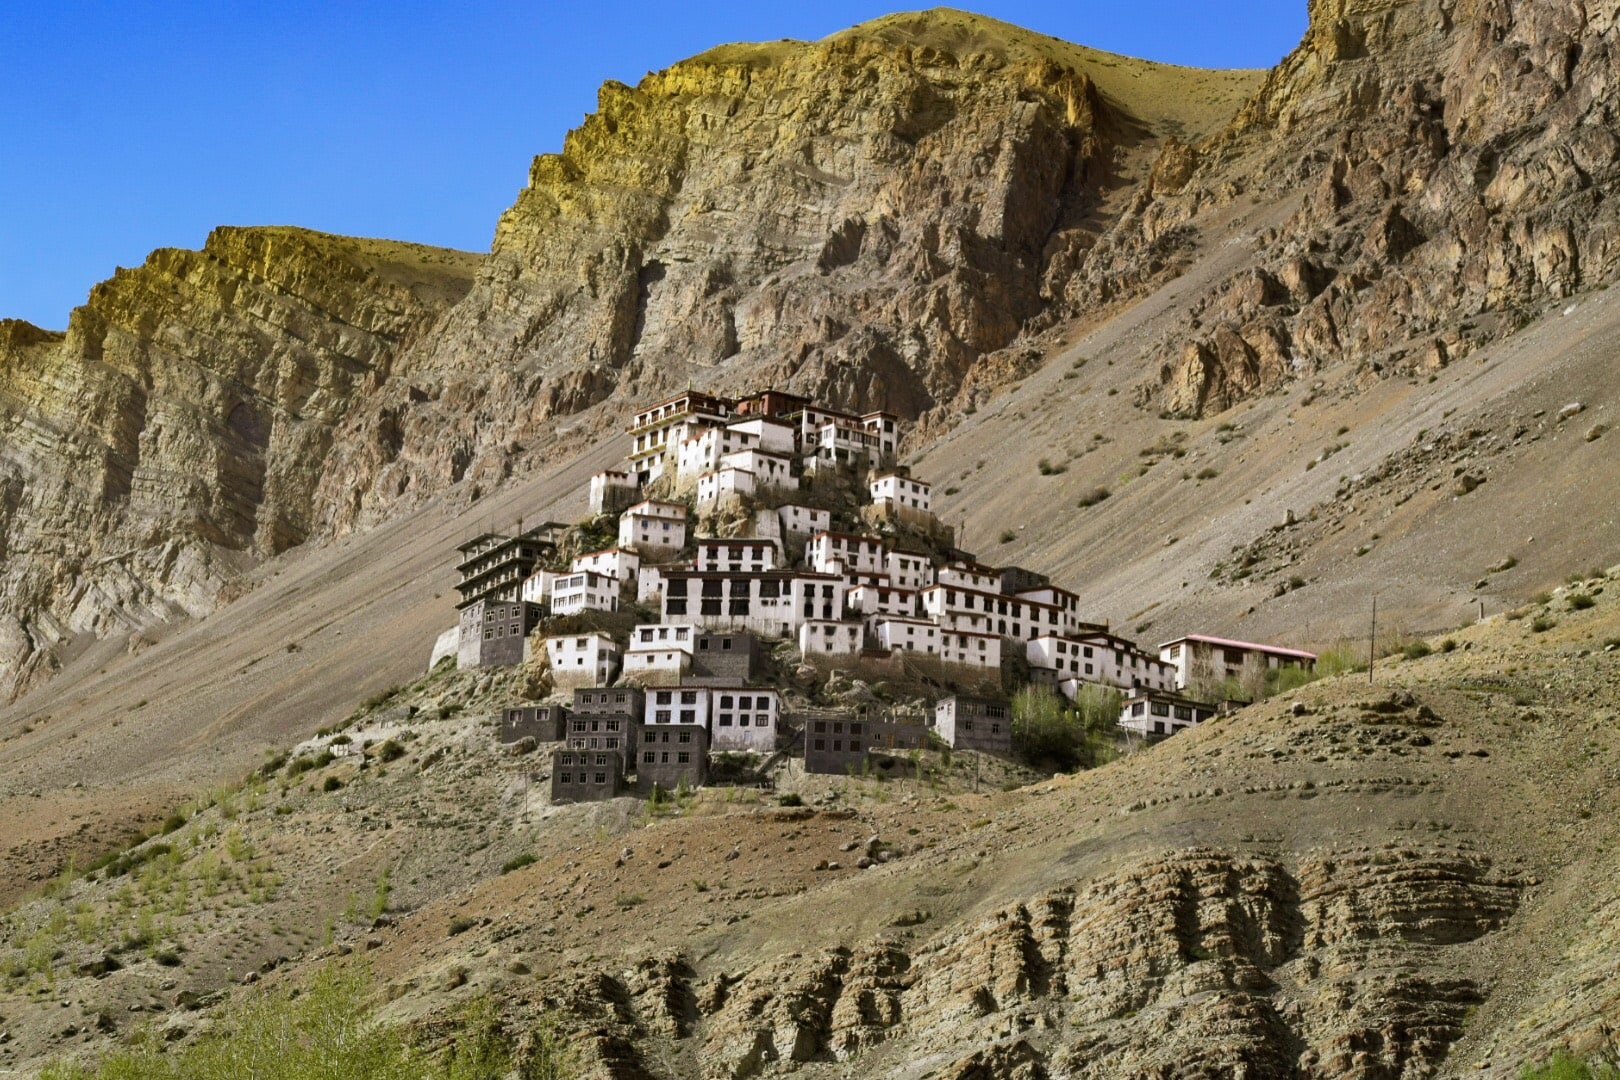 Things to pack for Spiti Valley Road Trip justwravel